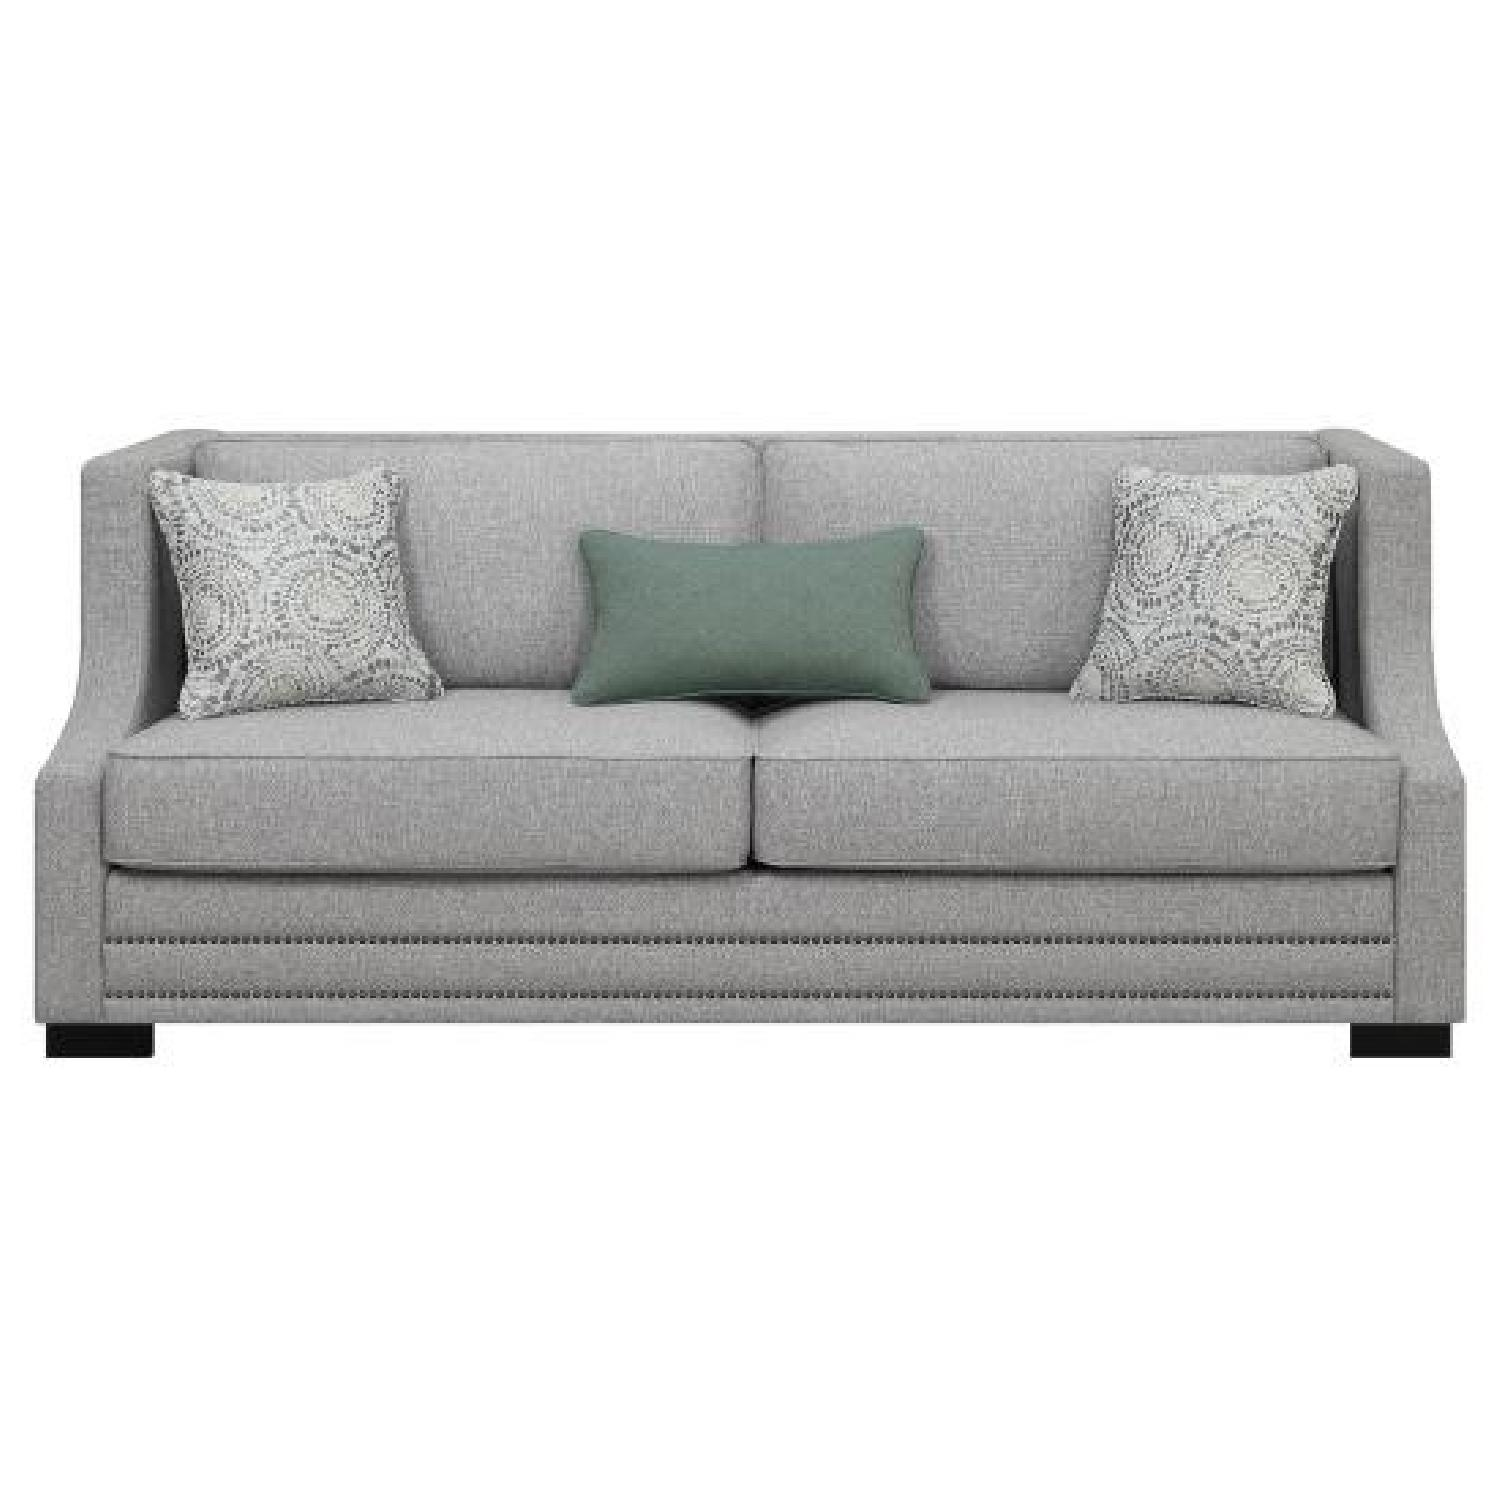 Light Grey Fabric Sofa w/ Square Frame & Sloping Arms